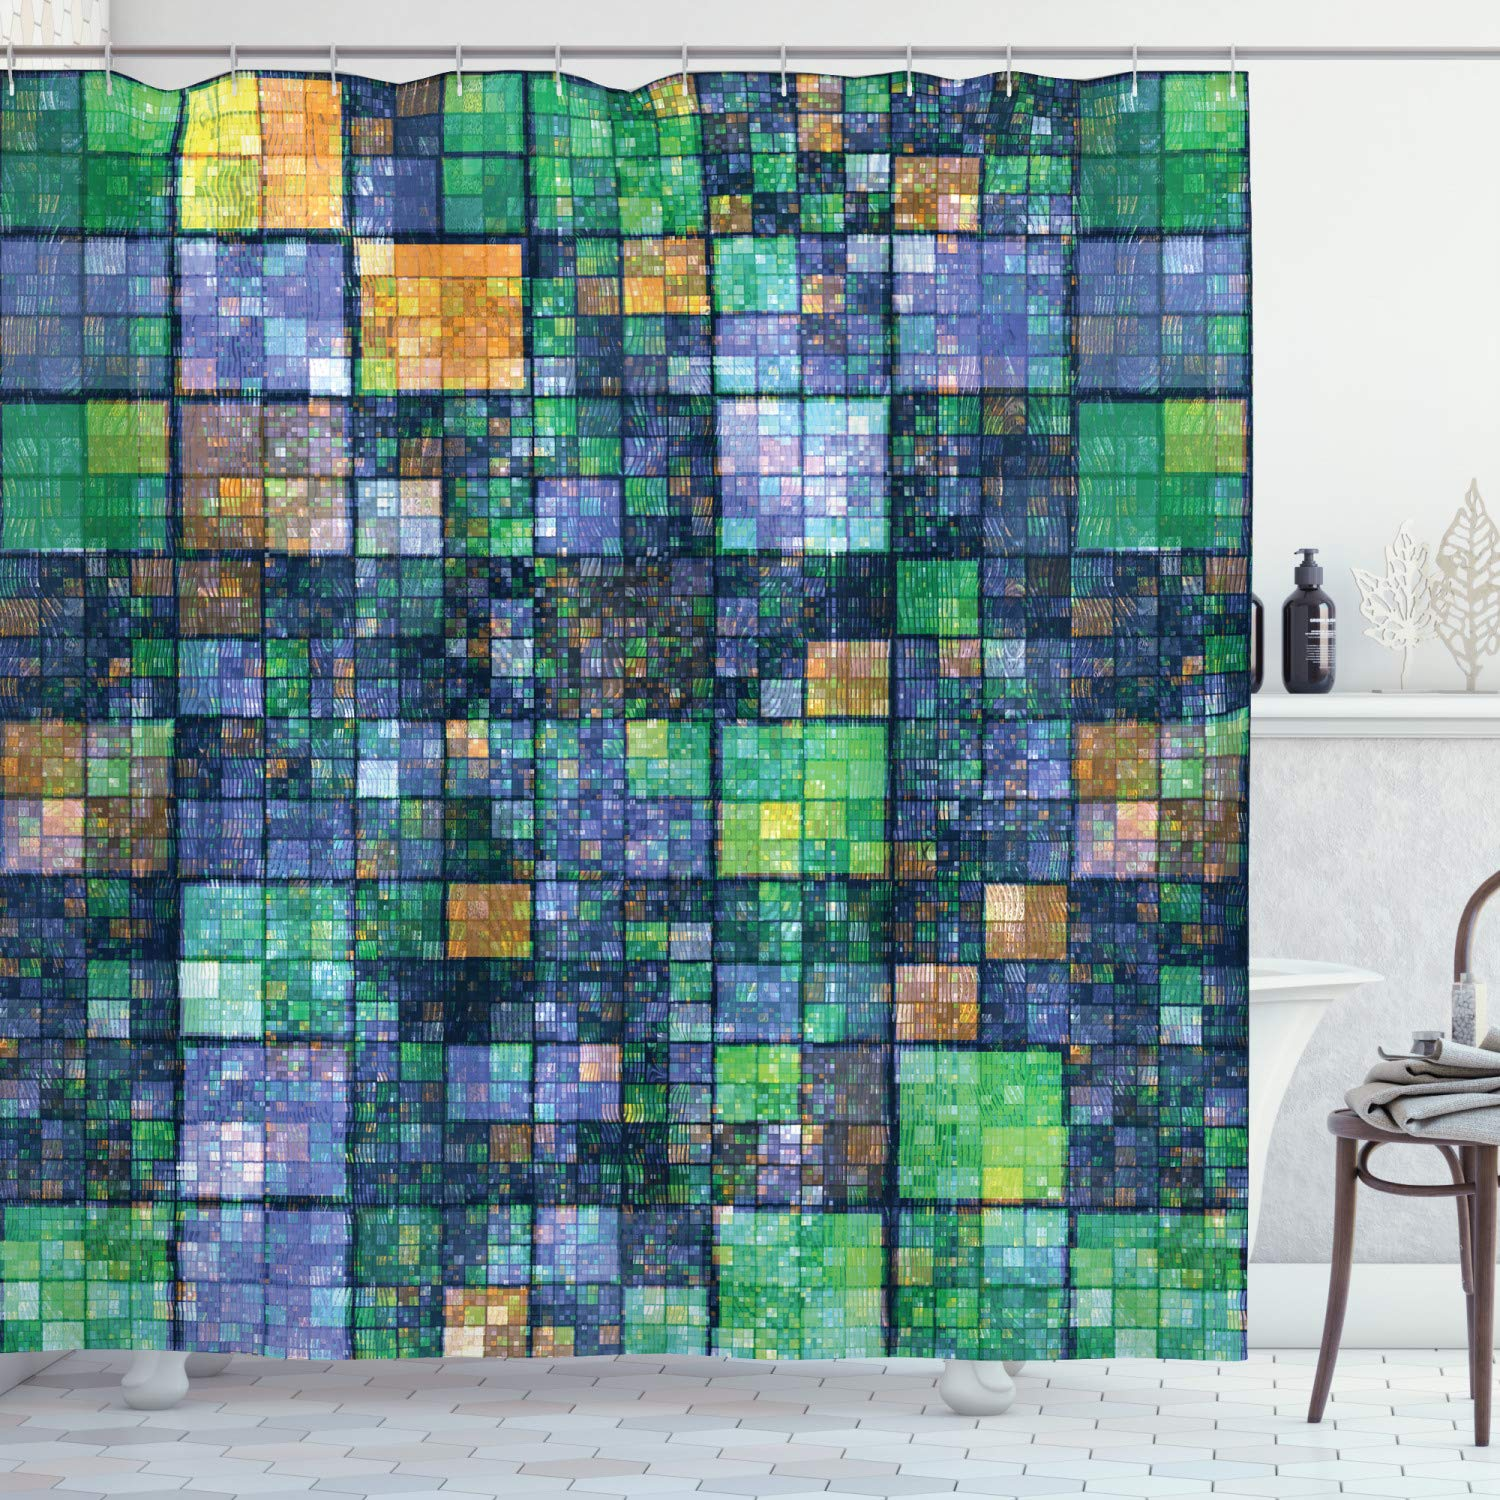 Ambesonne Modern Shower Curtain Mosaic Geometric Design With Rainbow Colors Patchwork Like Design Artwork Cloth Fabric Bathroom Decor Set With Hooks 75 Long Yellow Green